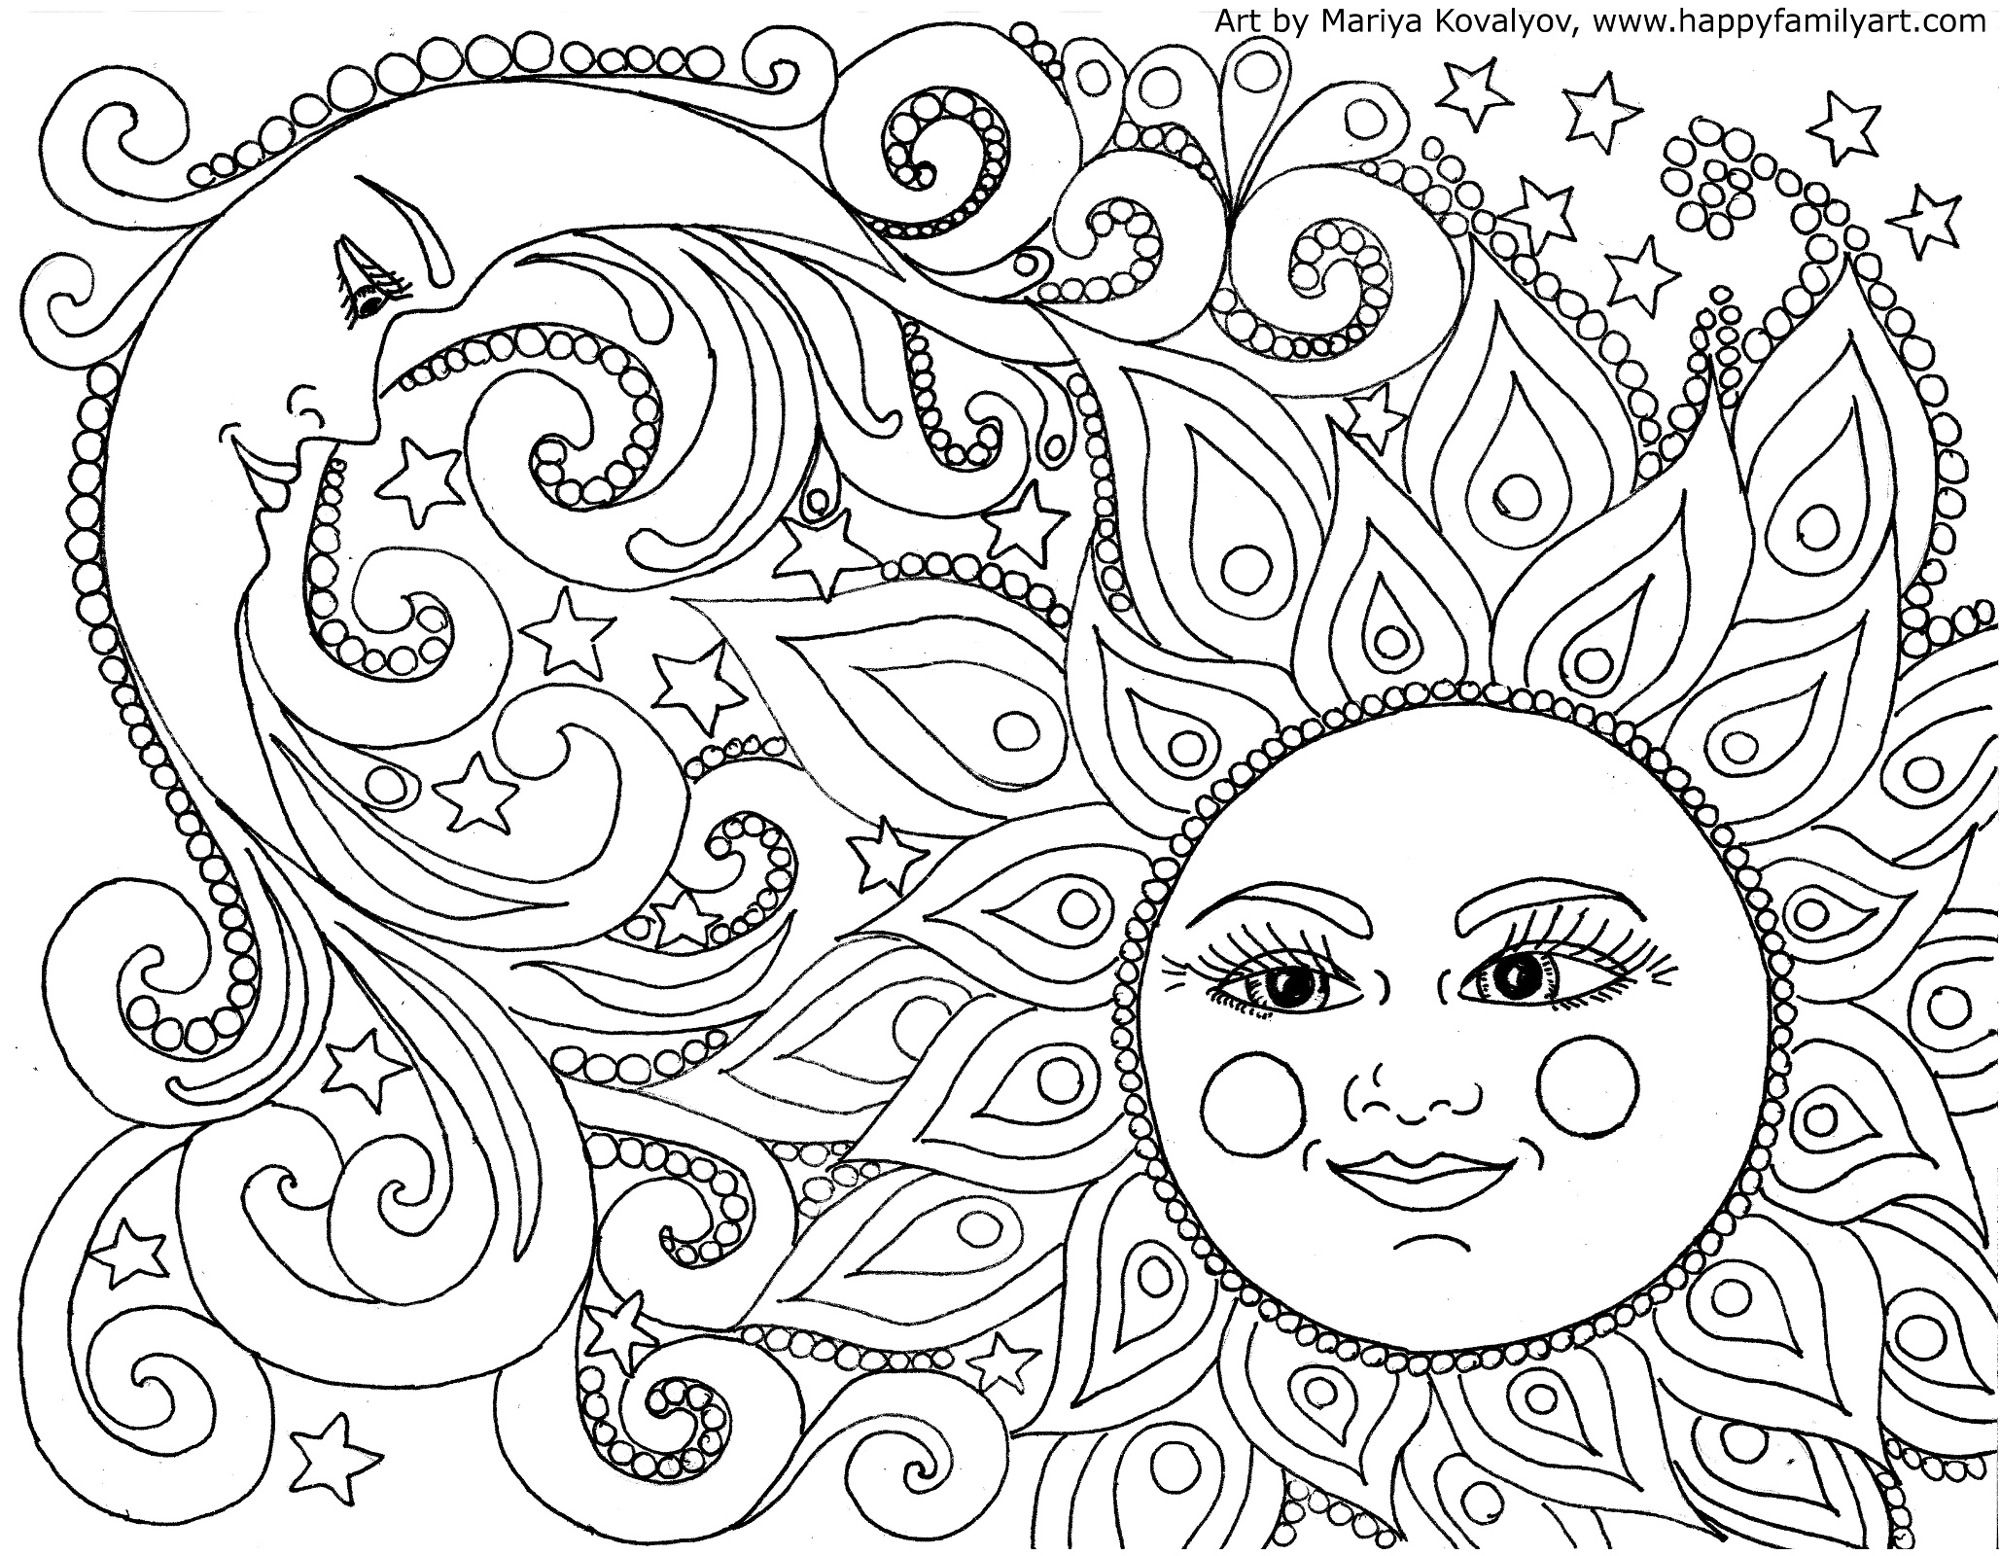 2000x1556 I Made Many Great Fun And Original Coloring Pages Color Your